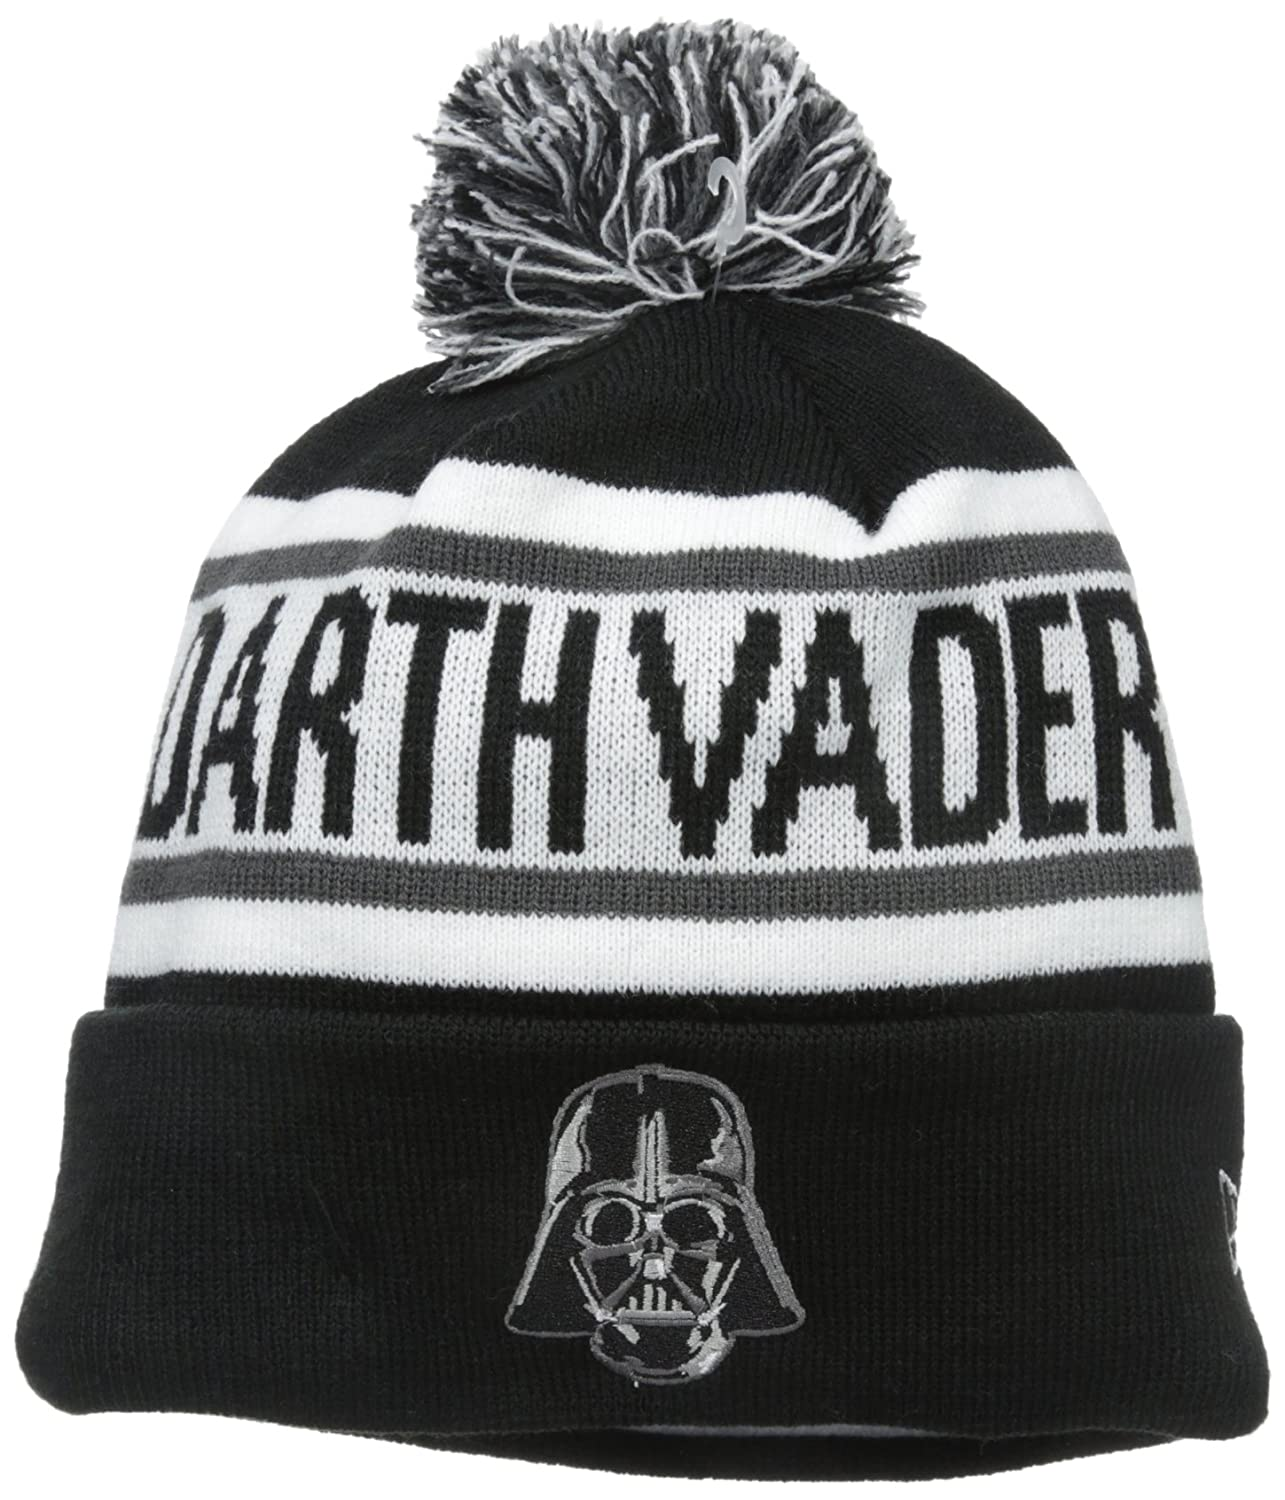 New Era Cap Men's Darth Vader Biggest Fan Redux Pom Knit Beanie, Black/Gray, One Size New Era Young Mens Child Code 80195355